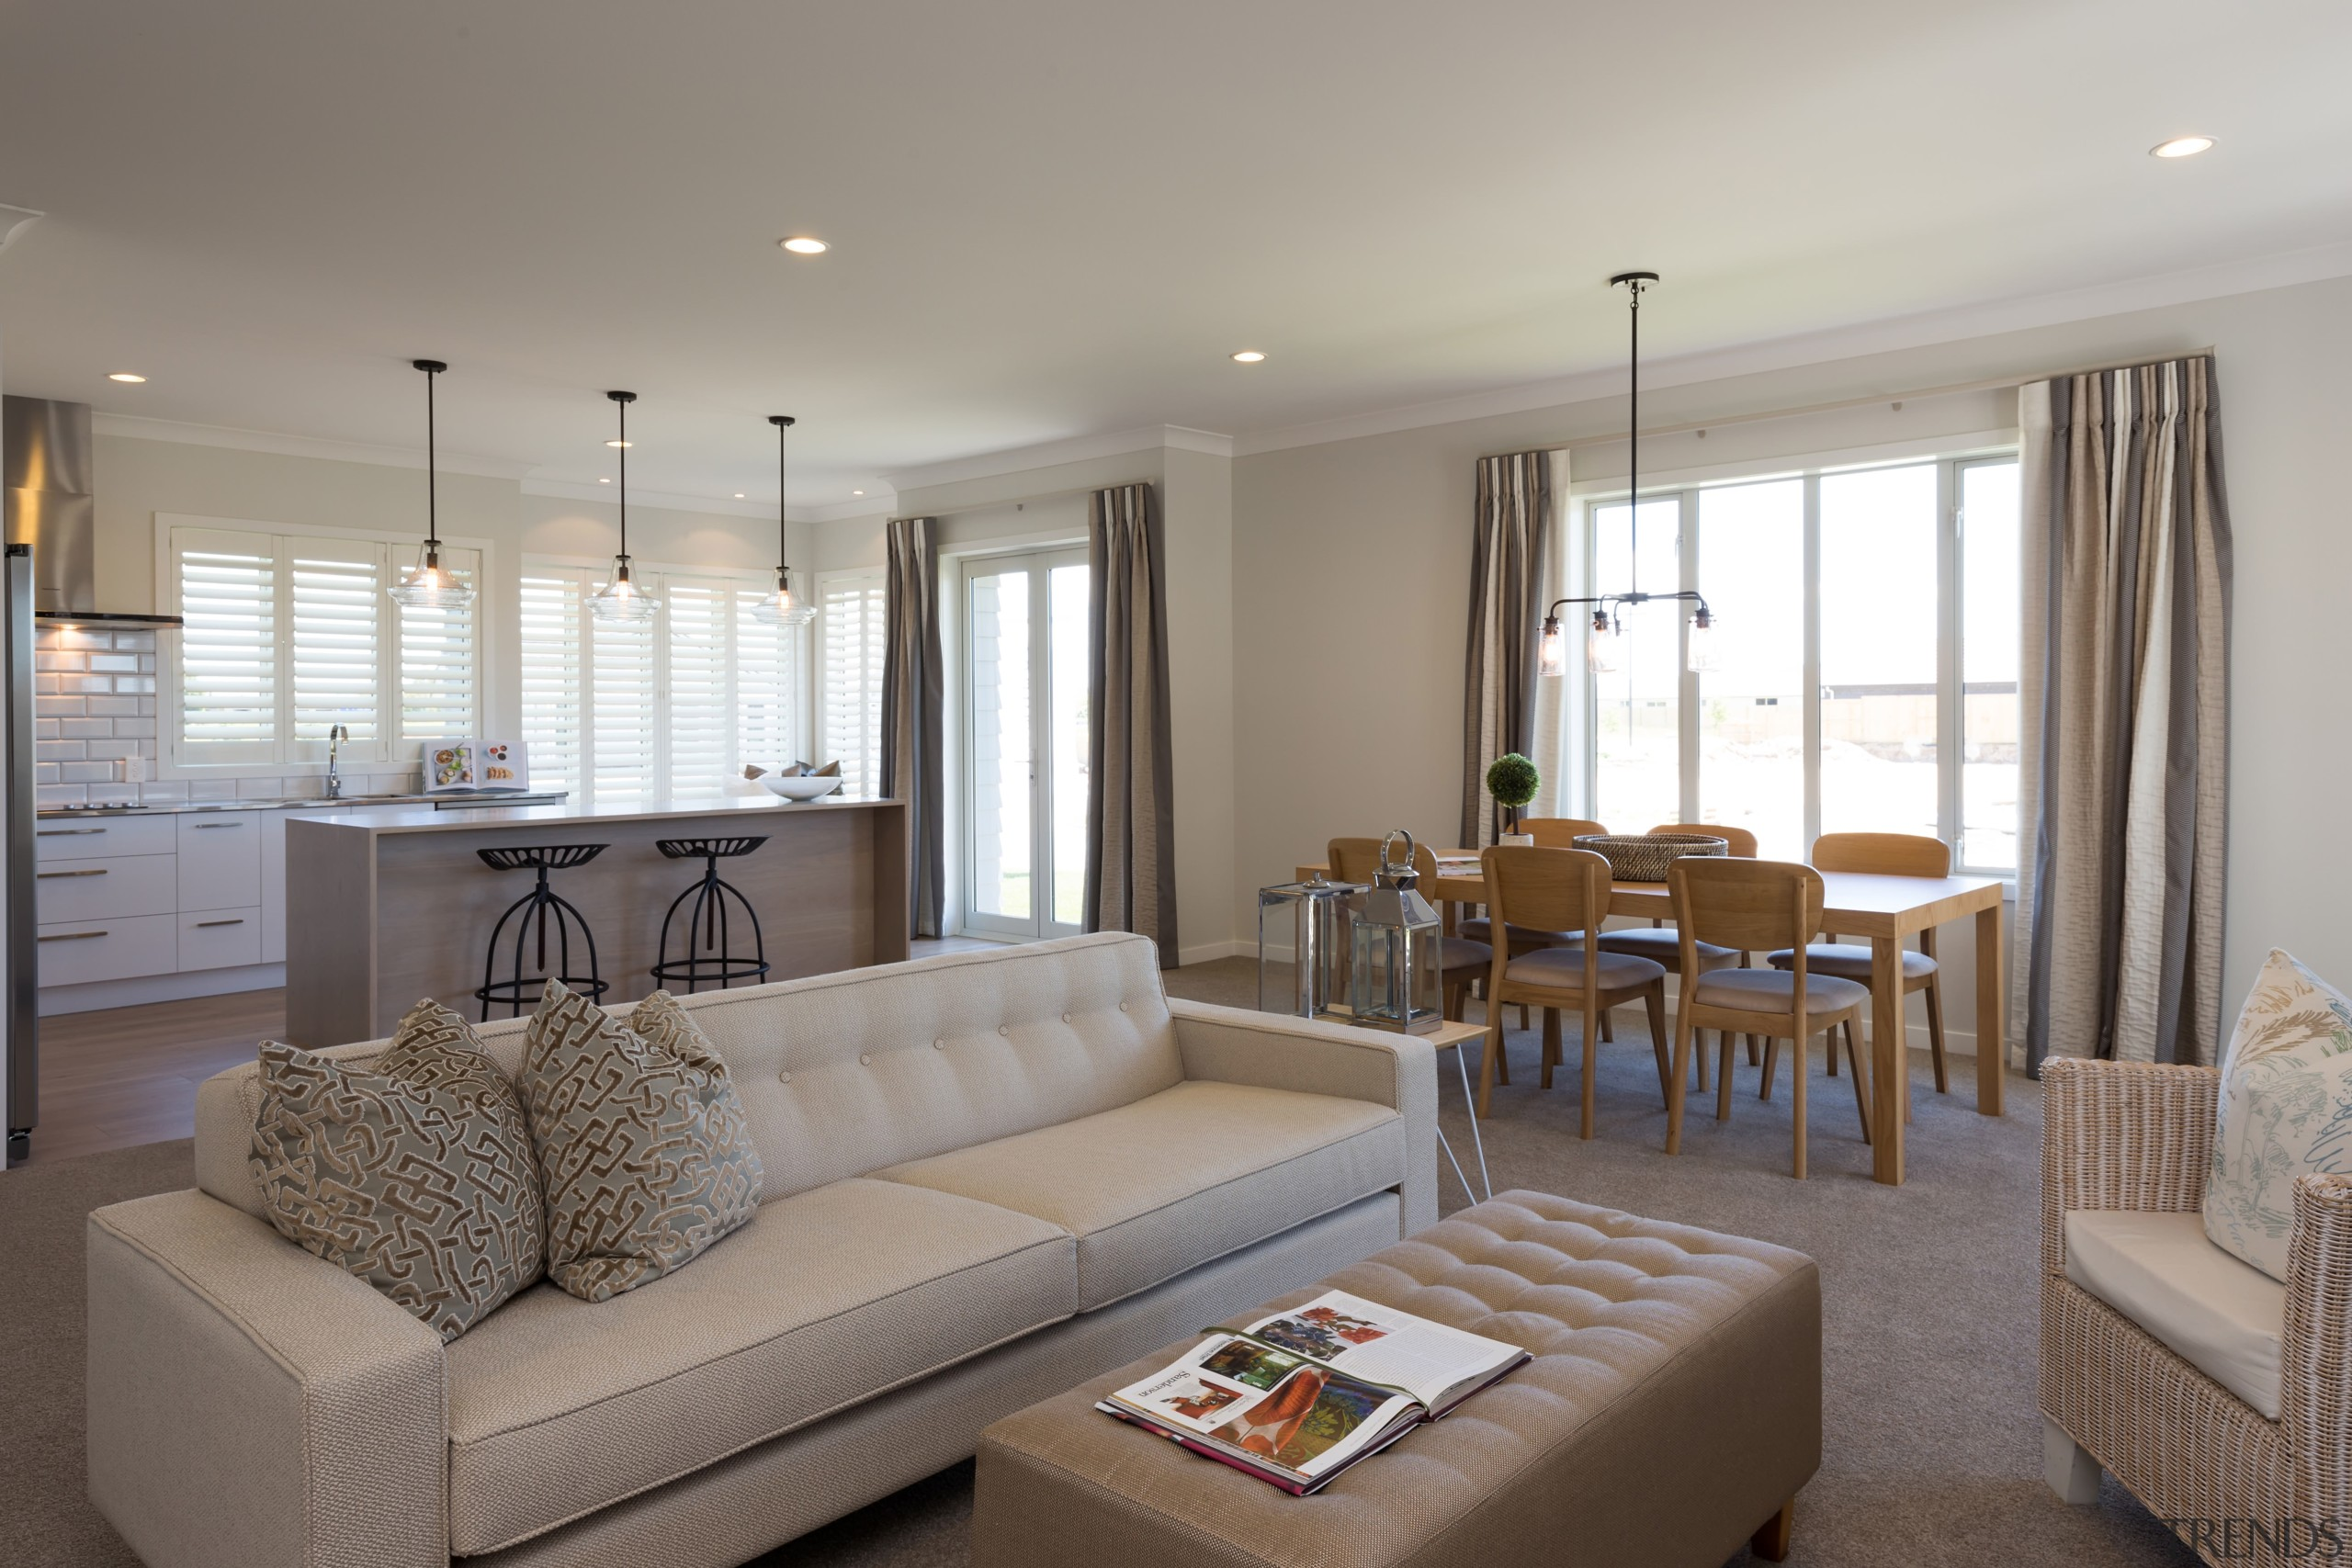 The new Landmark Homes Brookside show home in ceiling, home, interior design, living room, property, real estate, room, gray